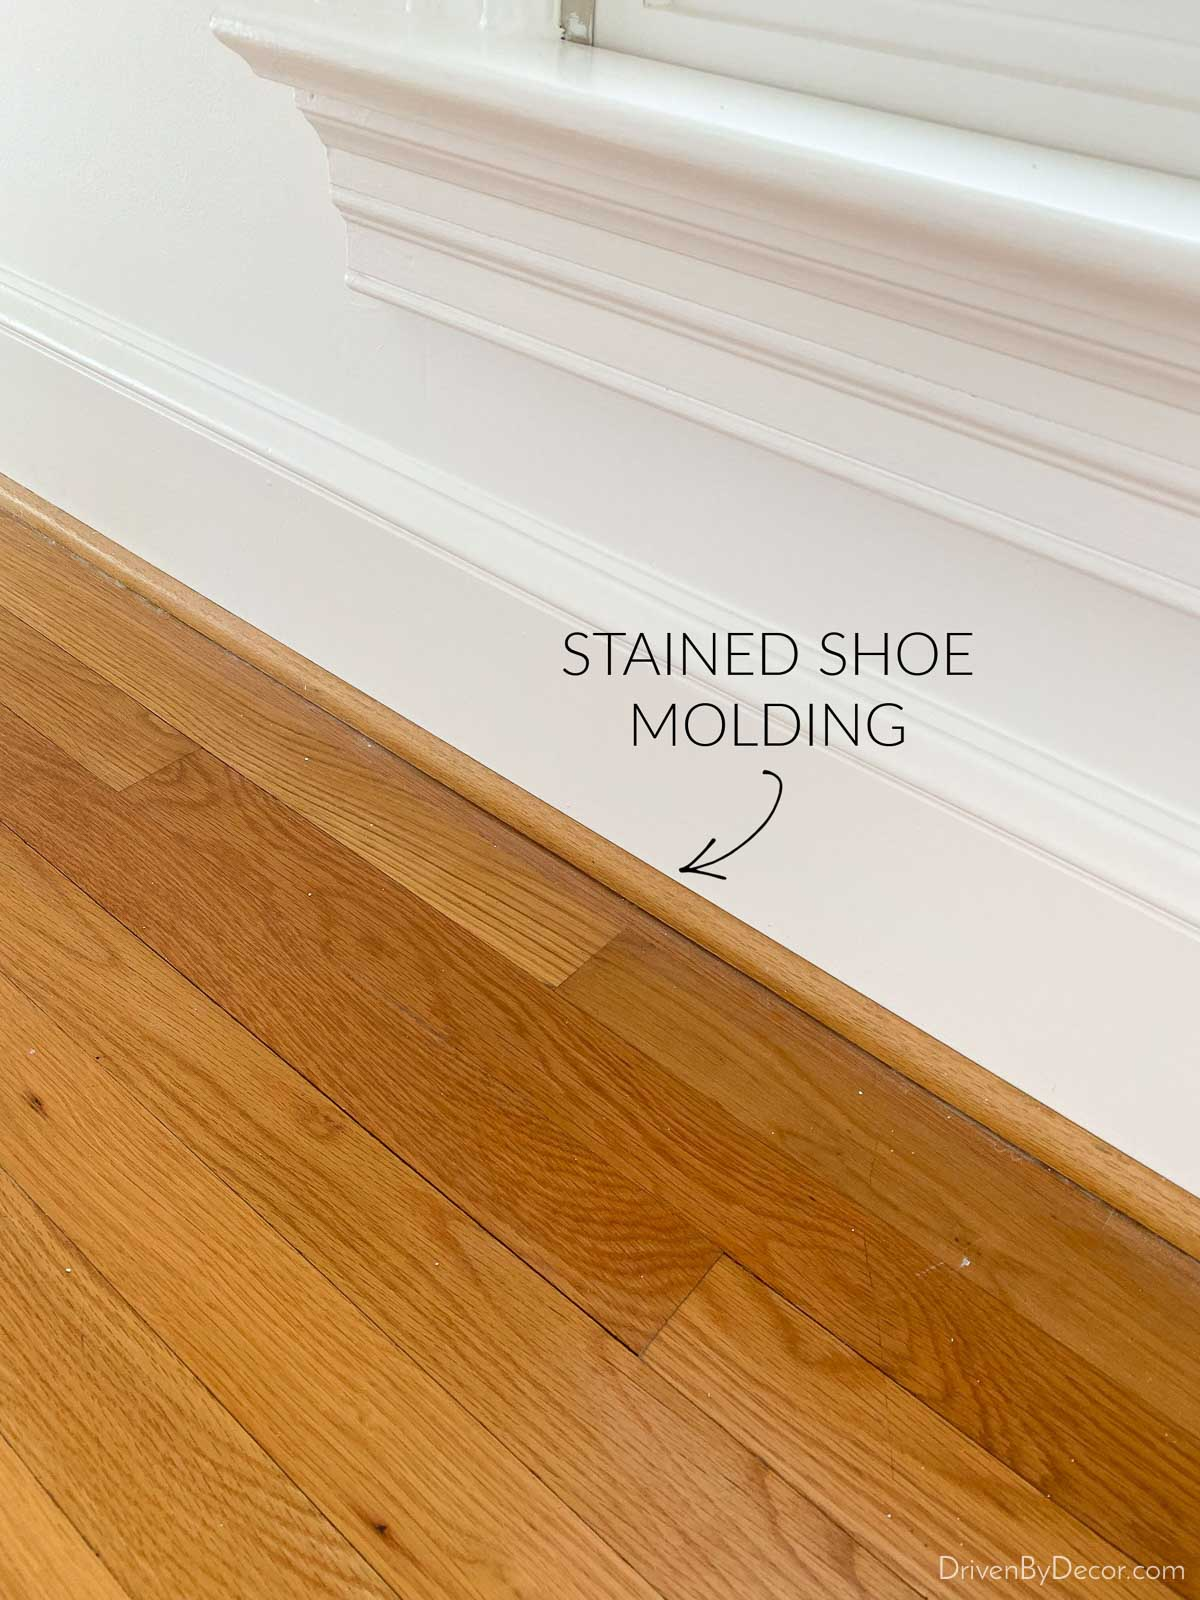 Hardwood floors with stained shoe molding